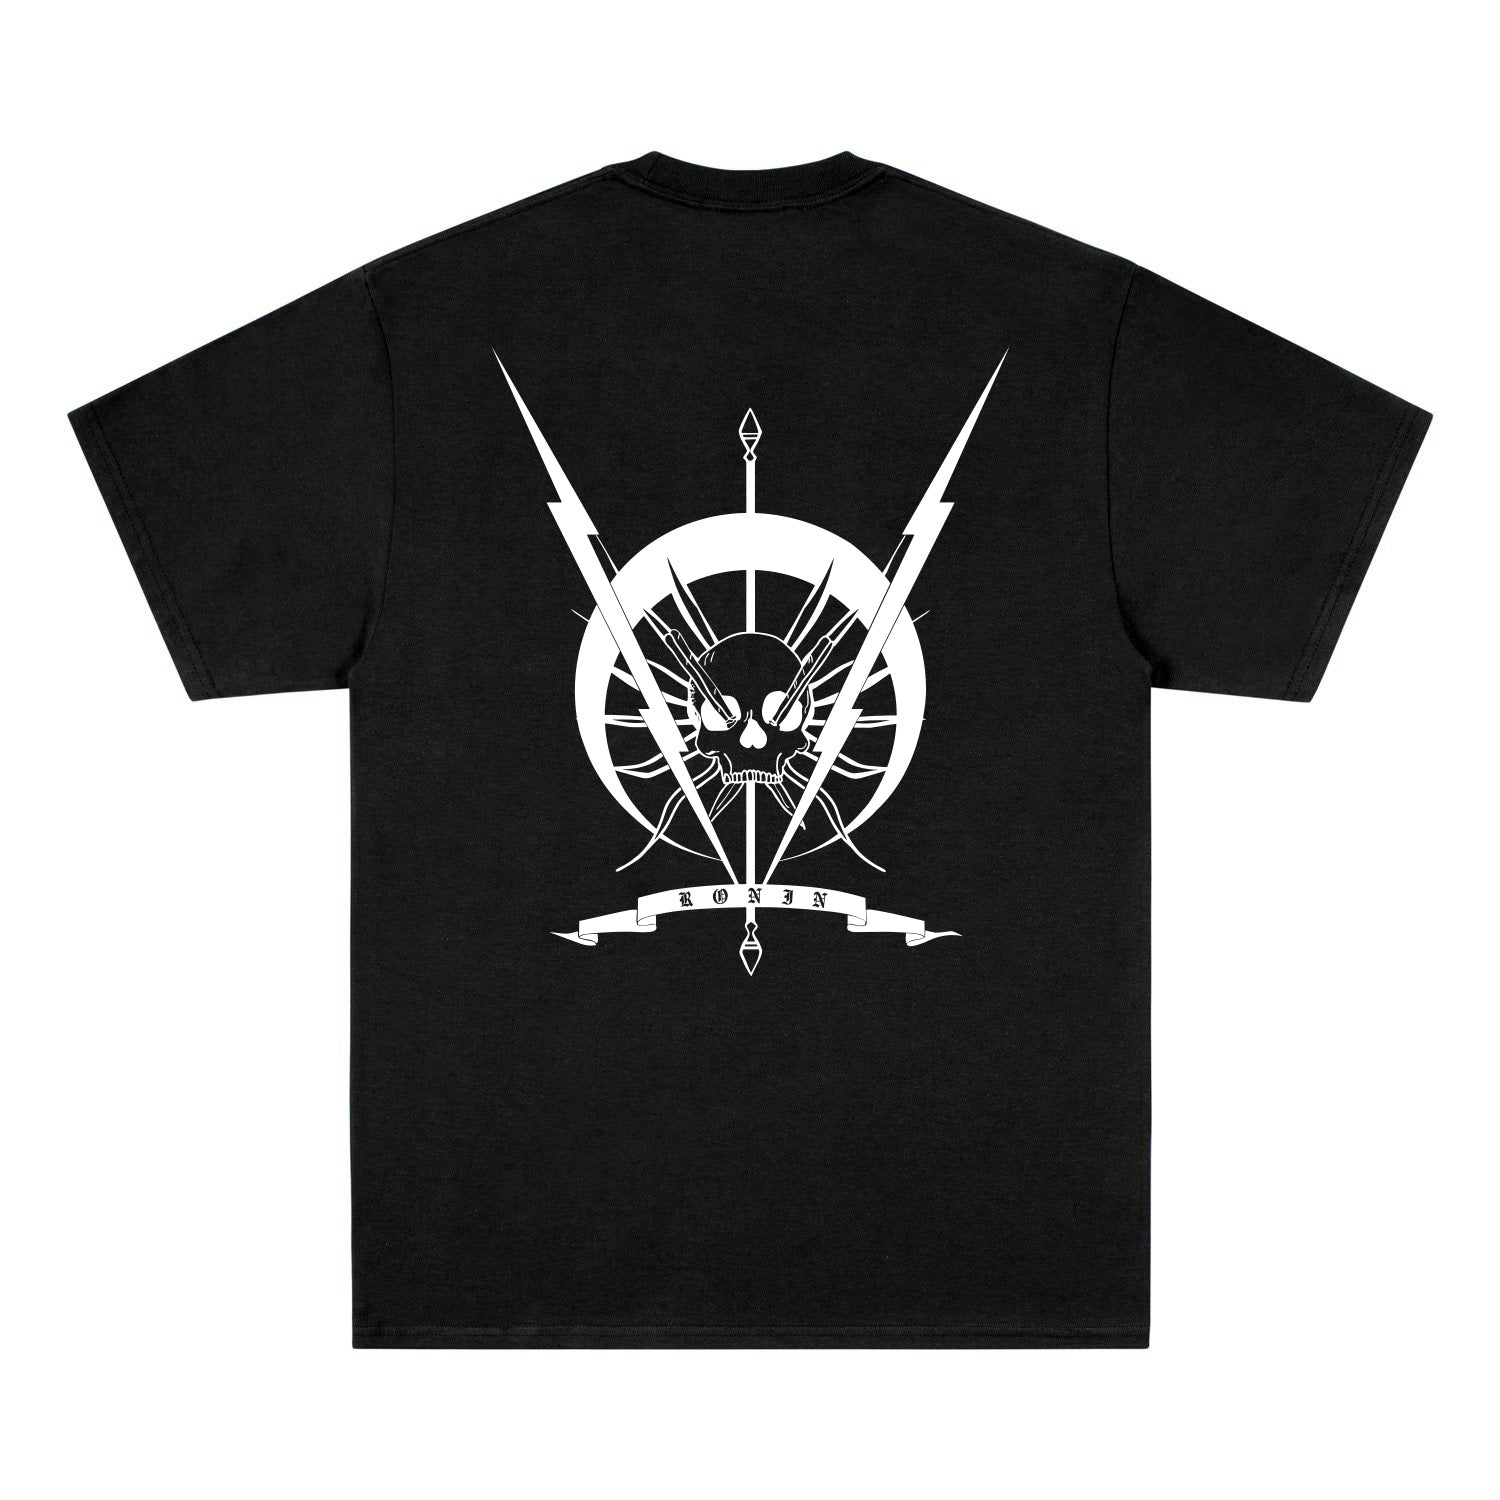 Guerrilla Warfare Tee - Black